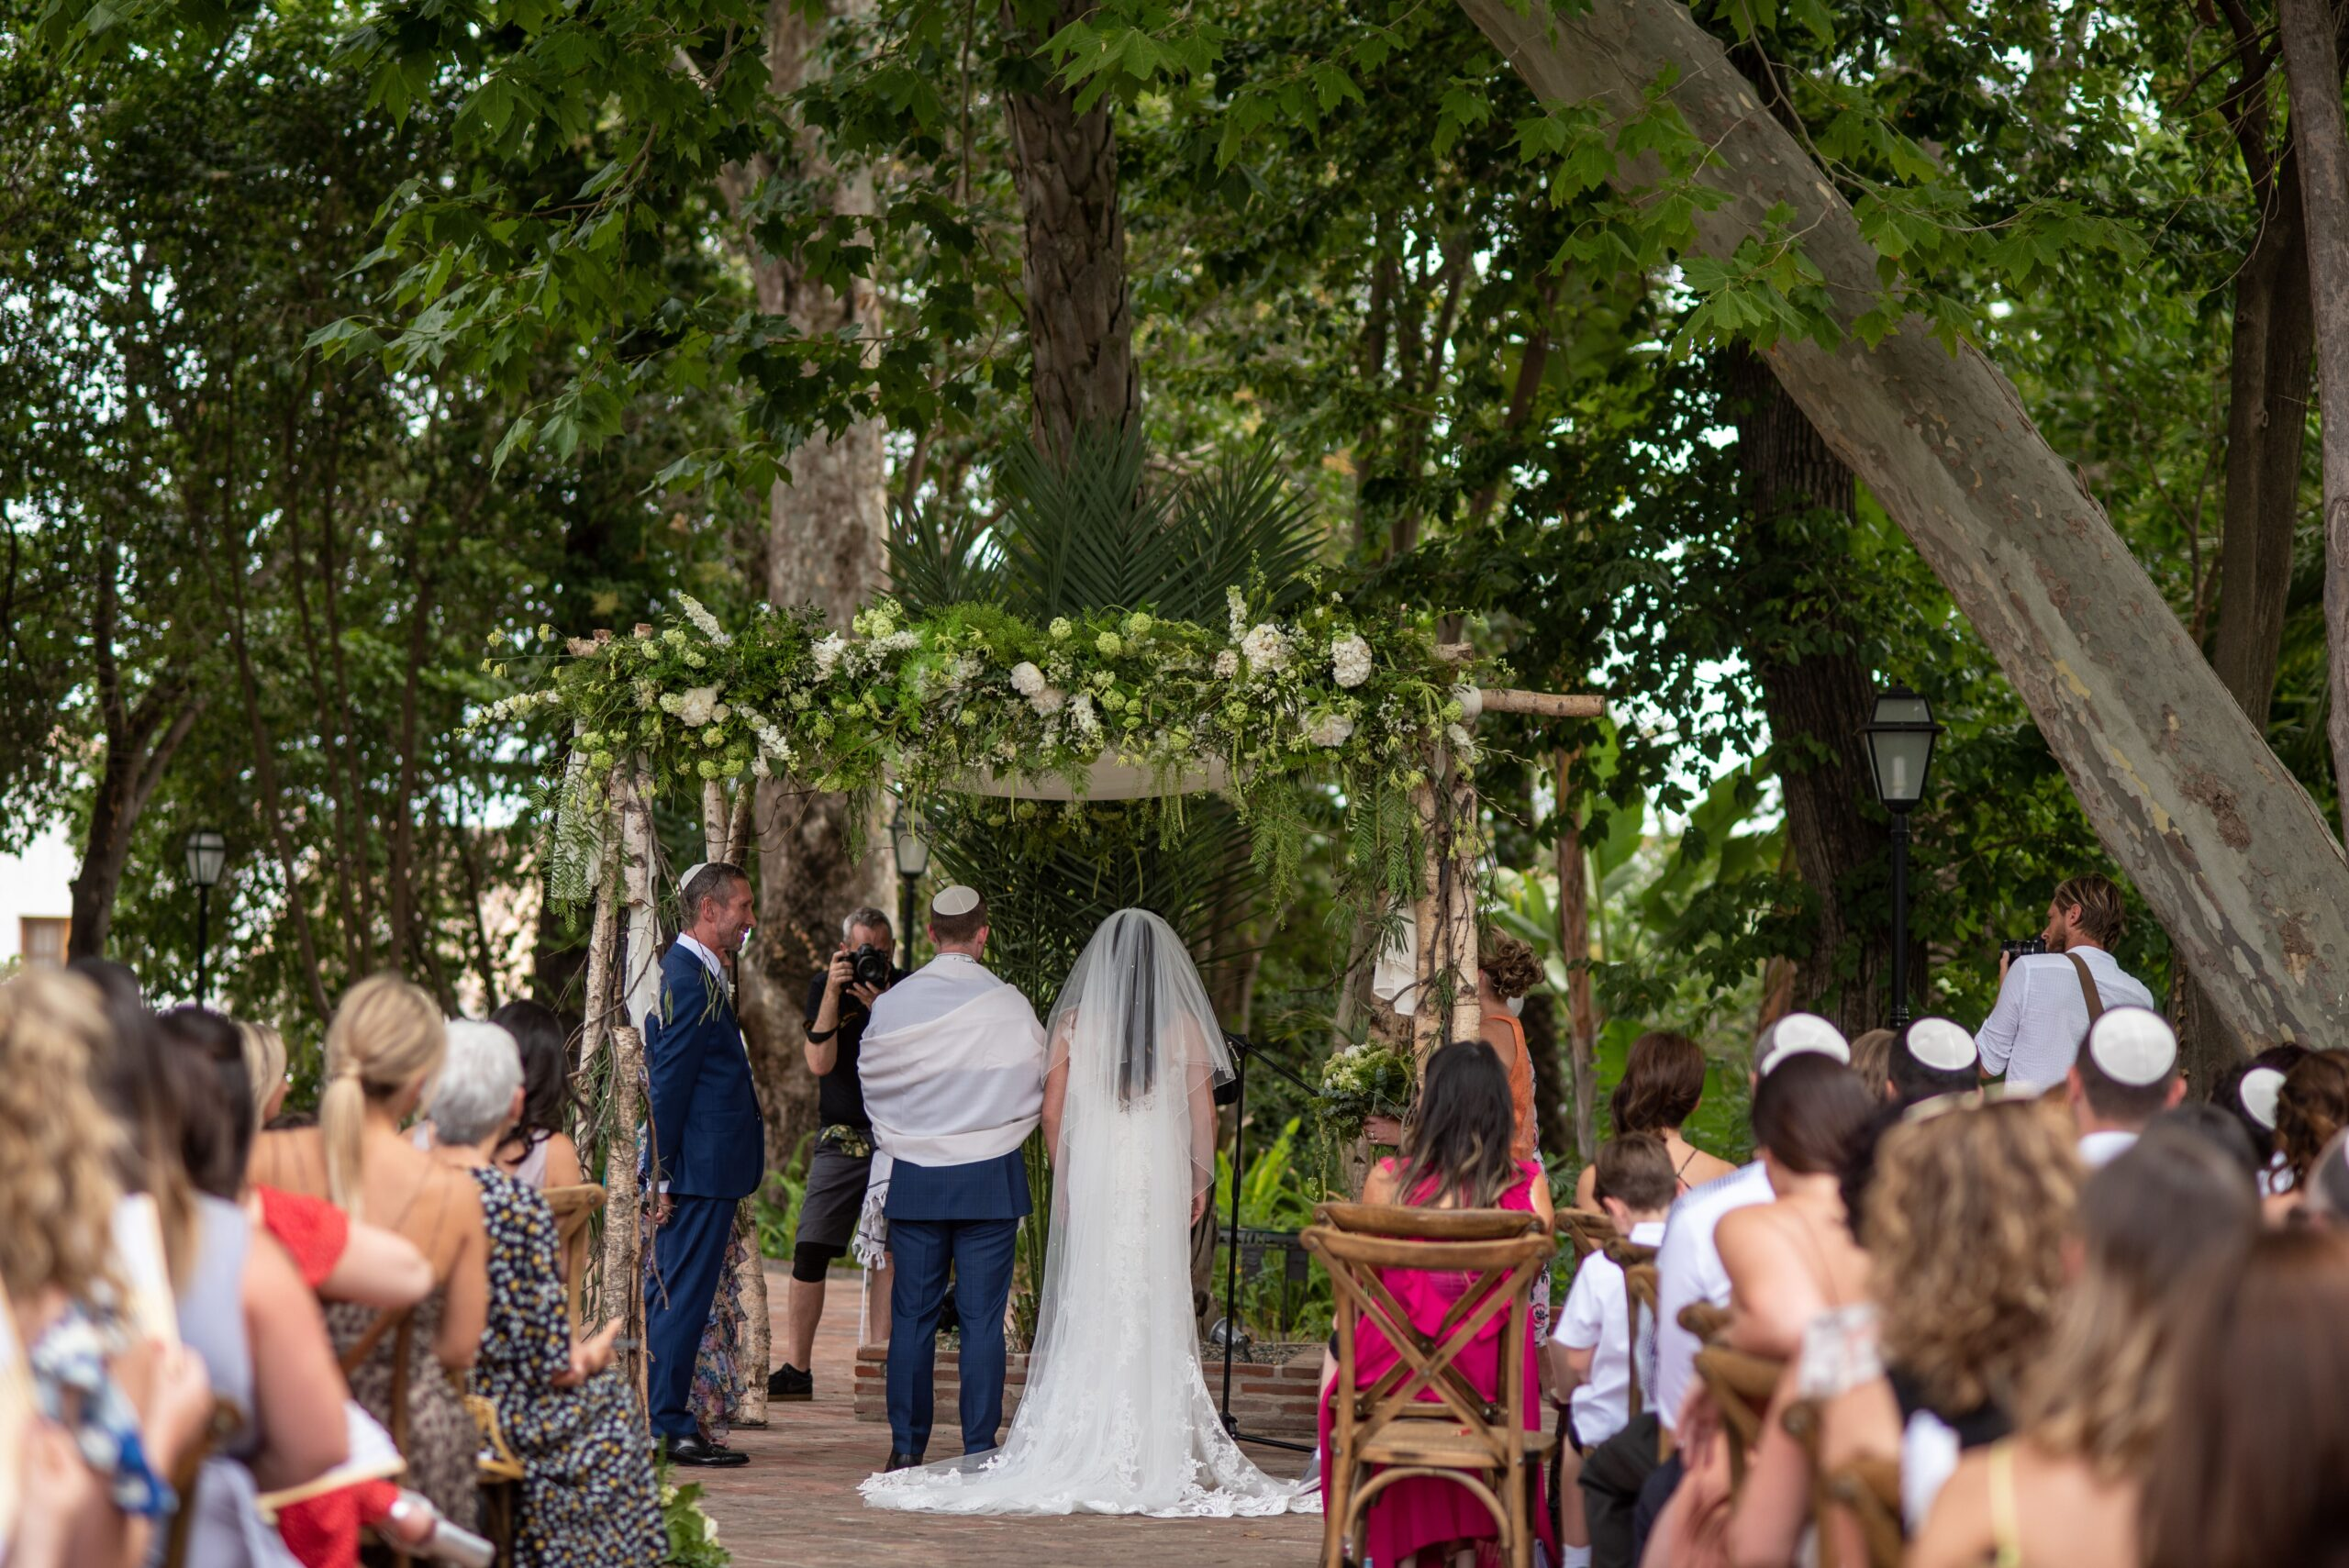 The bride and groom exchanging vows in the grounds of the Hacienda - Jeremy Standley Photographer